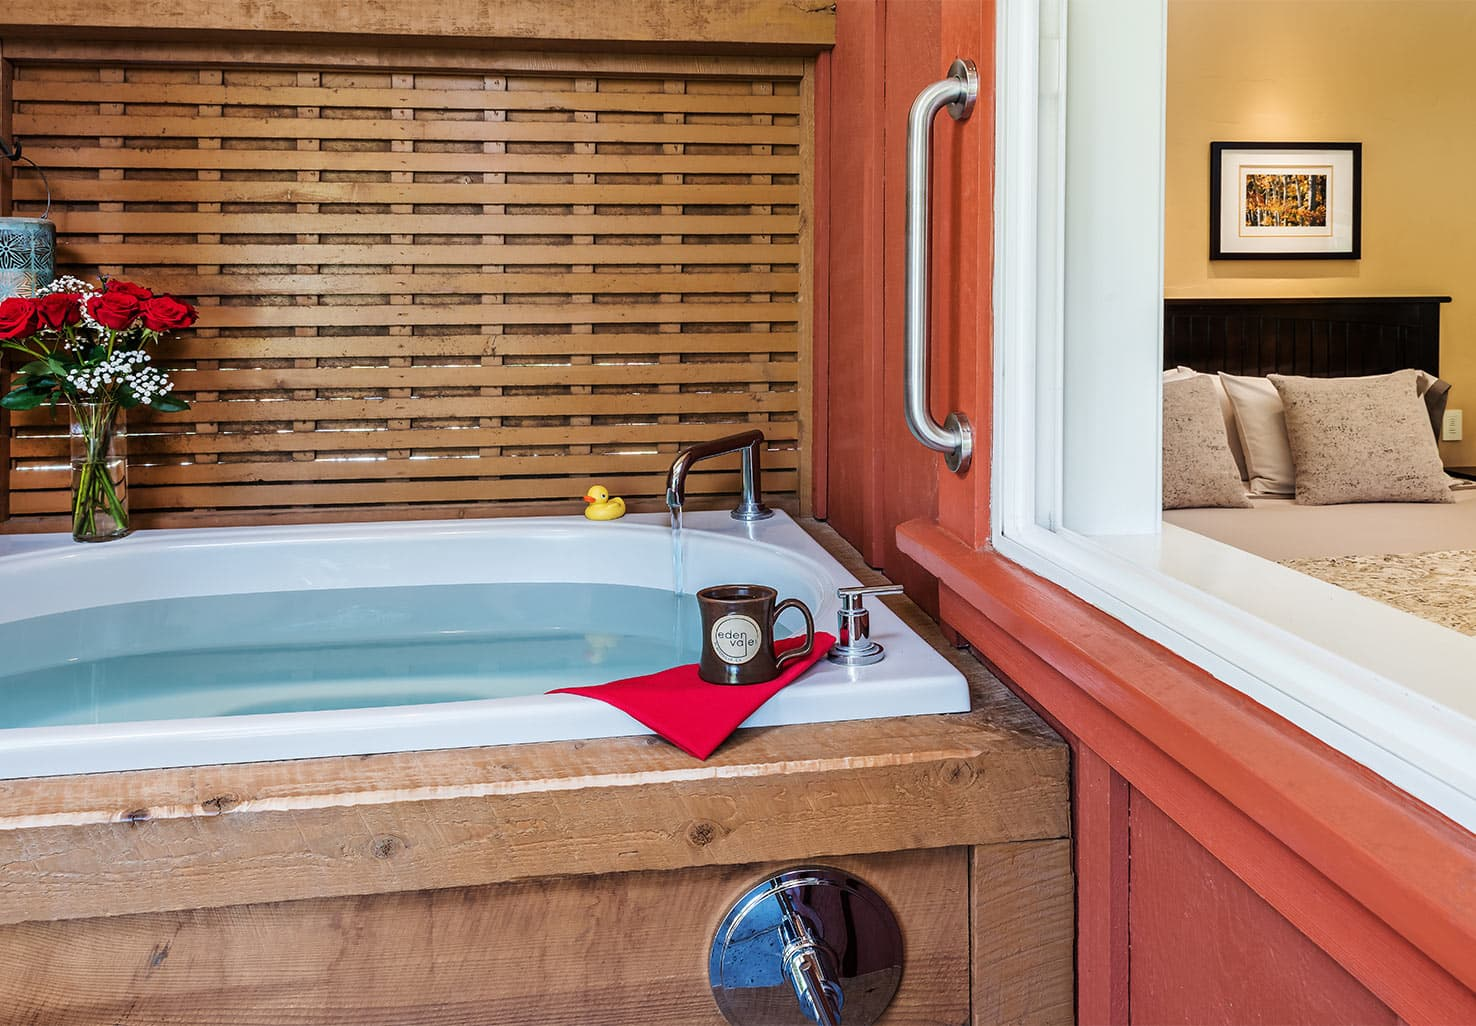 Madrone Room showing outdoor tub and view of bed